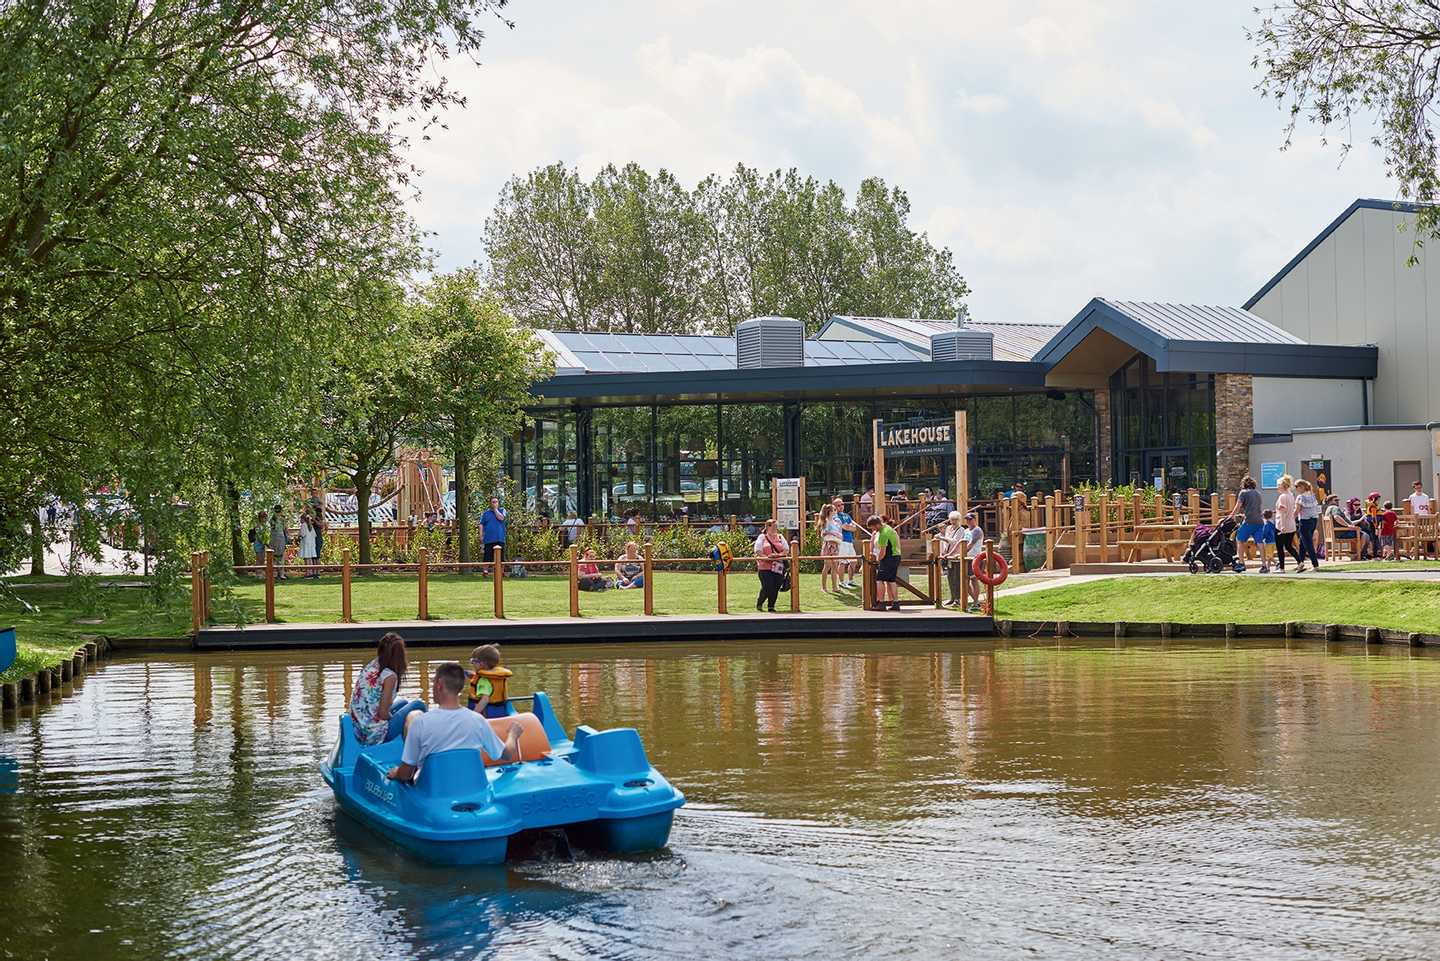 Guests in a pedalo on the boating lake overlooking The Lakehouse restaurant